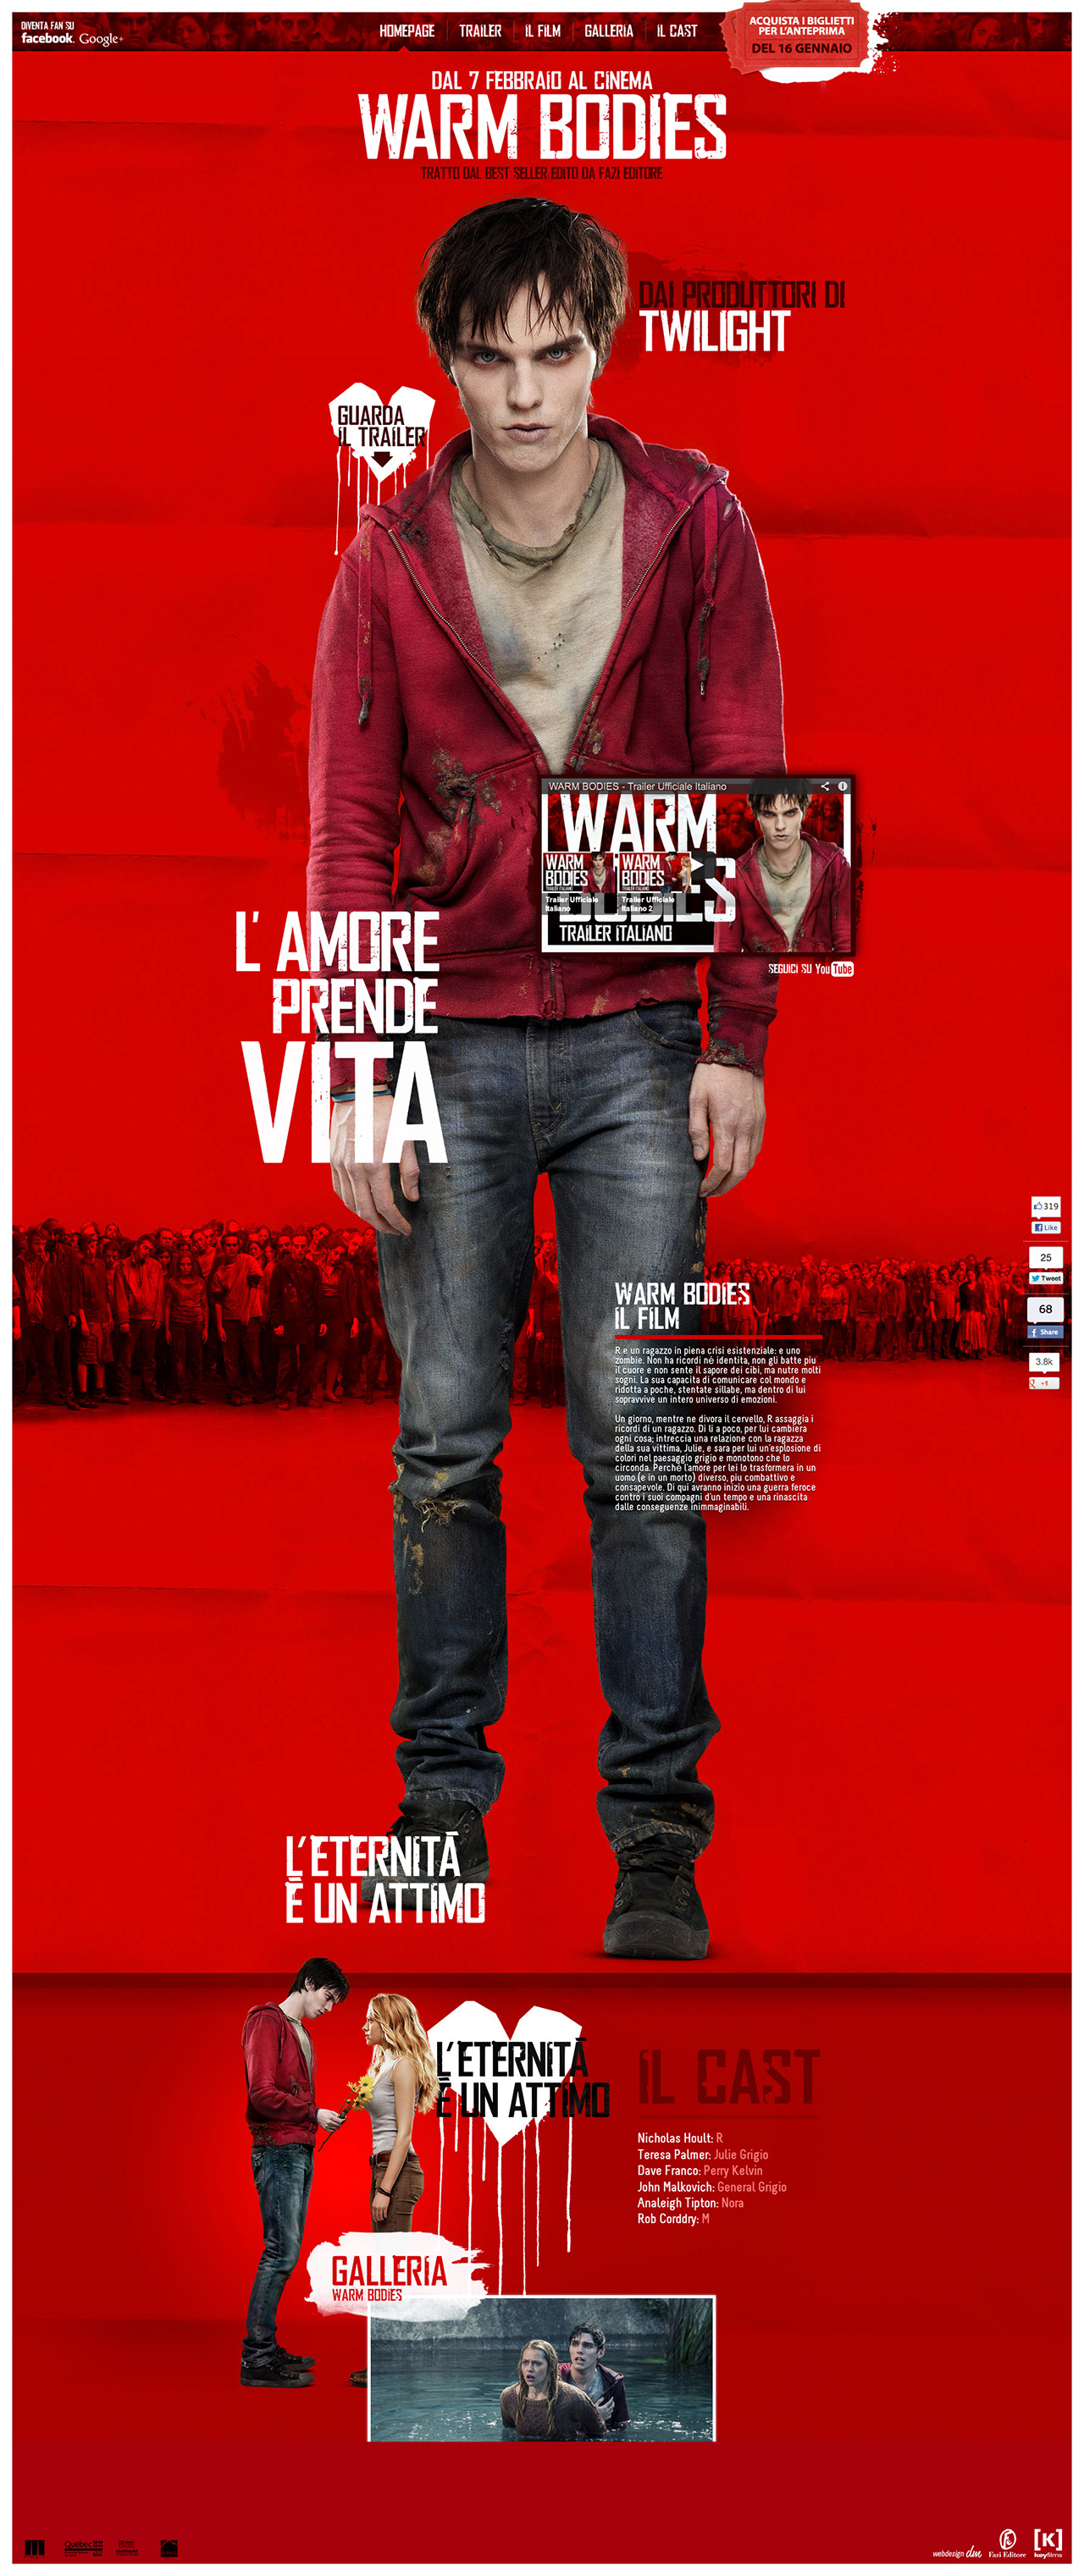 Warm Bodies Website Screenshot